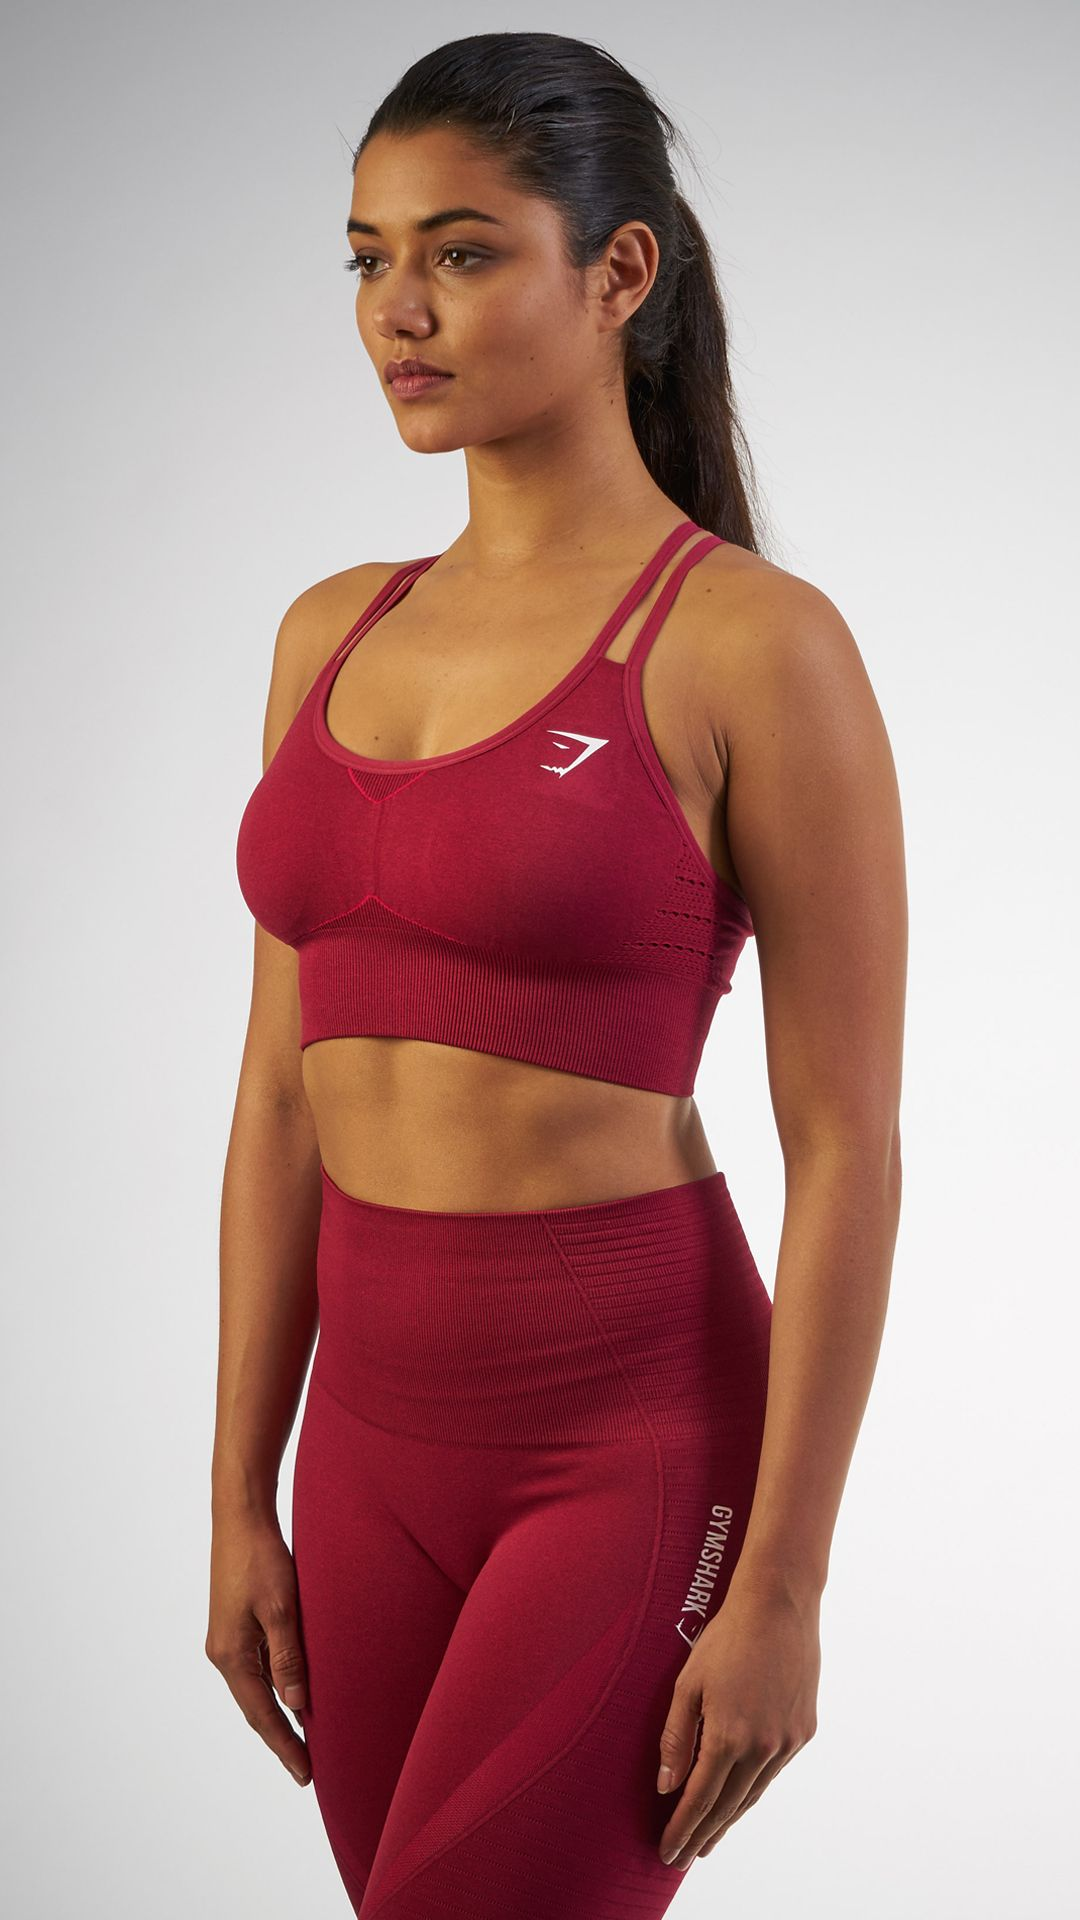 c64c92ae3a Seamless evolution. The Seamless Cross-Back Sports Bra in Beet is a  beautiful and comfortable addition to any workout